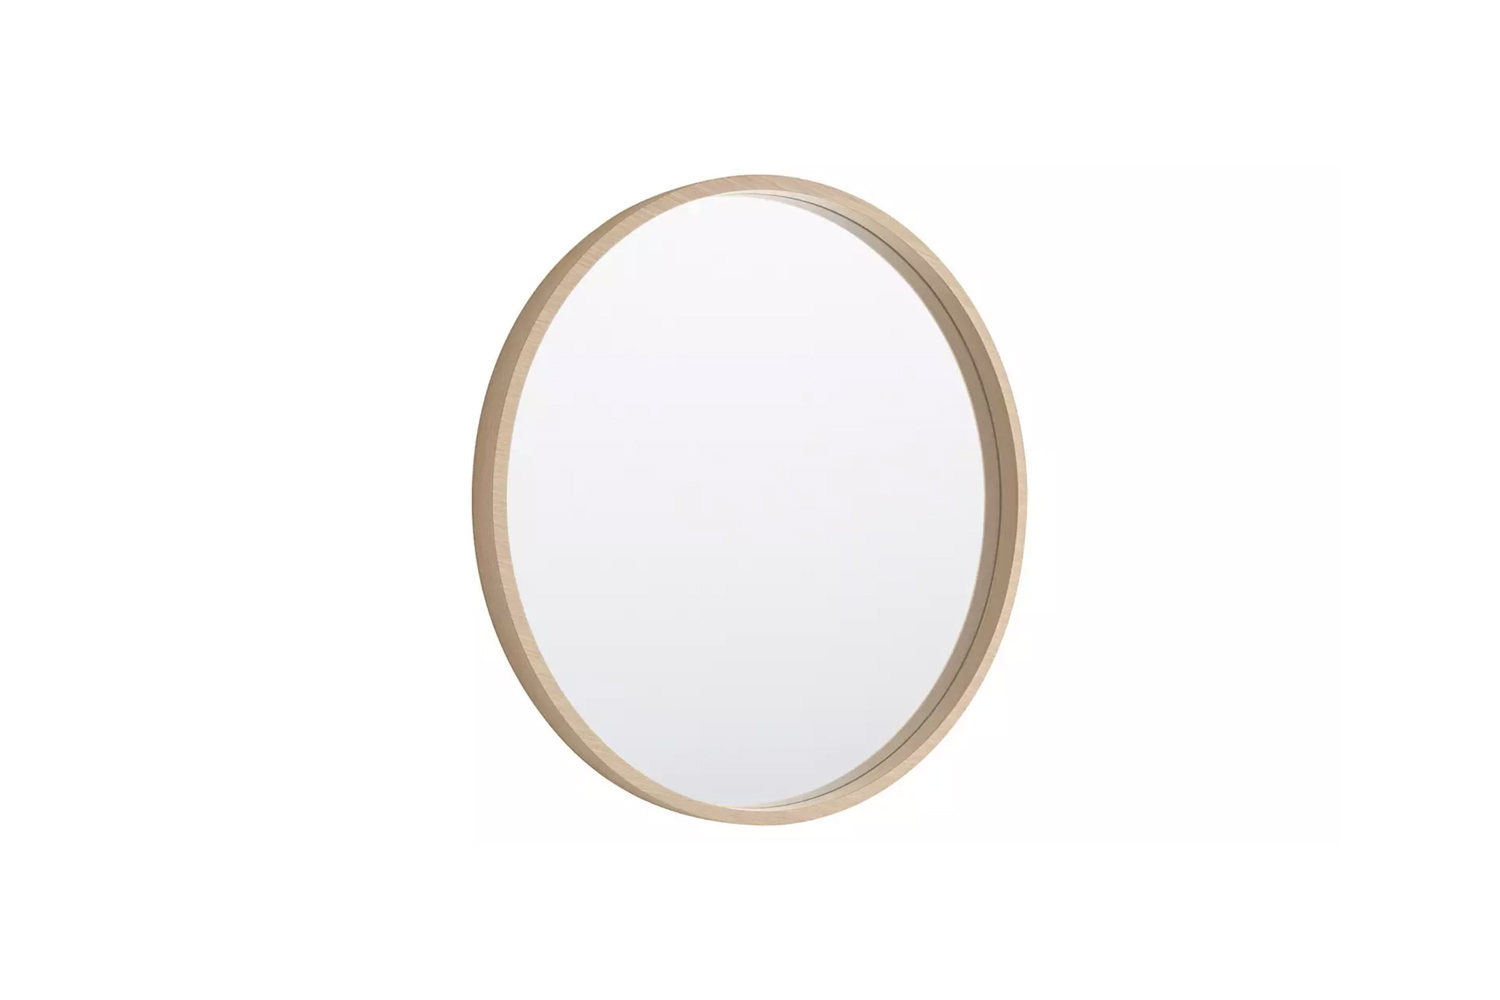 From Habitat the Ariano Maple Veneer Round Wall Mirror is £95.